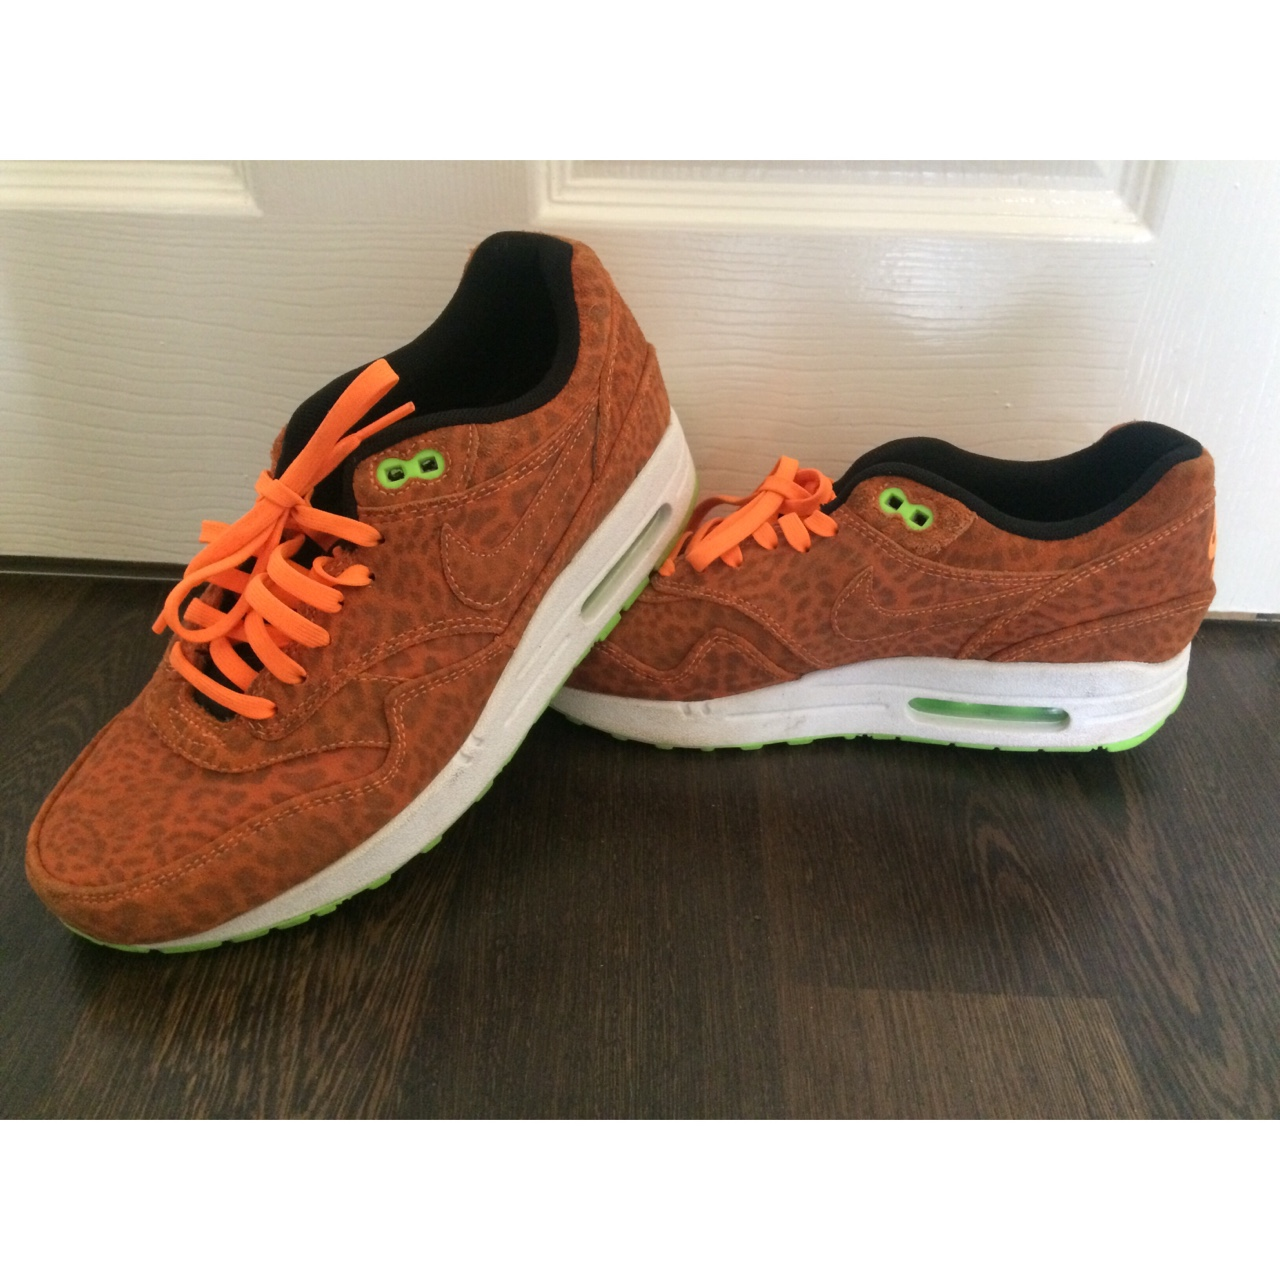 best sneakers a1eec a521f BLACK FRIDAY SALE Nike air max Limited edition... - Depop